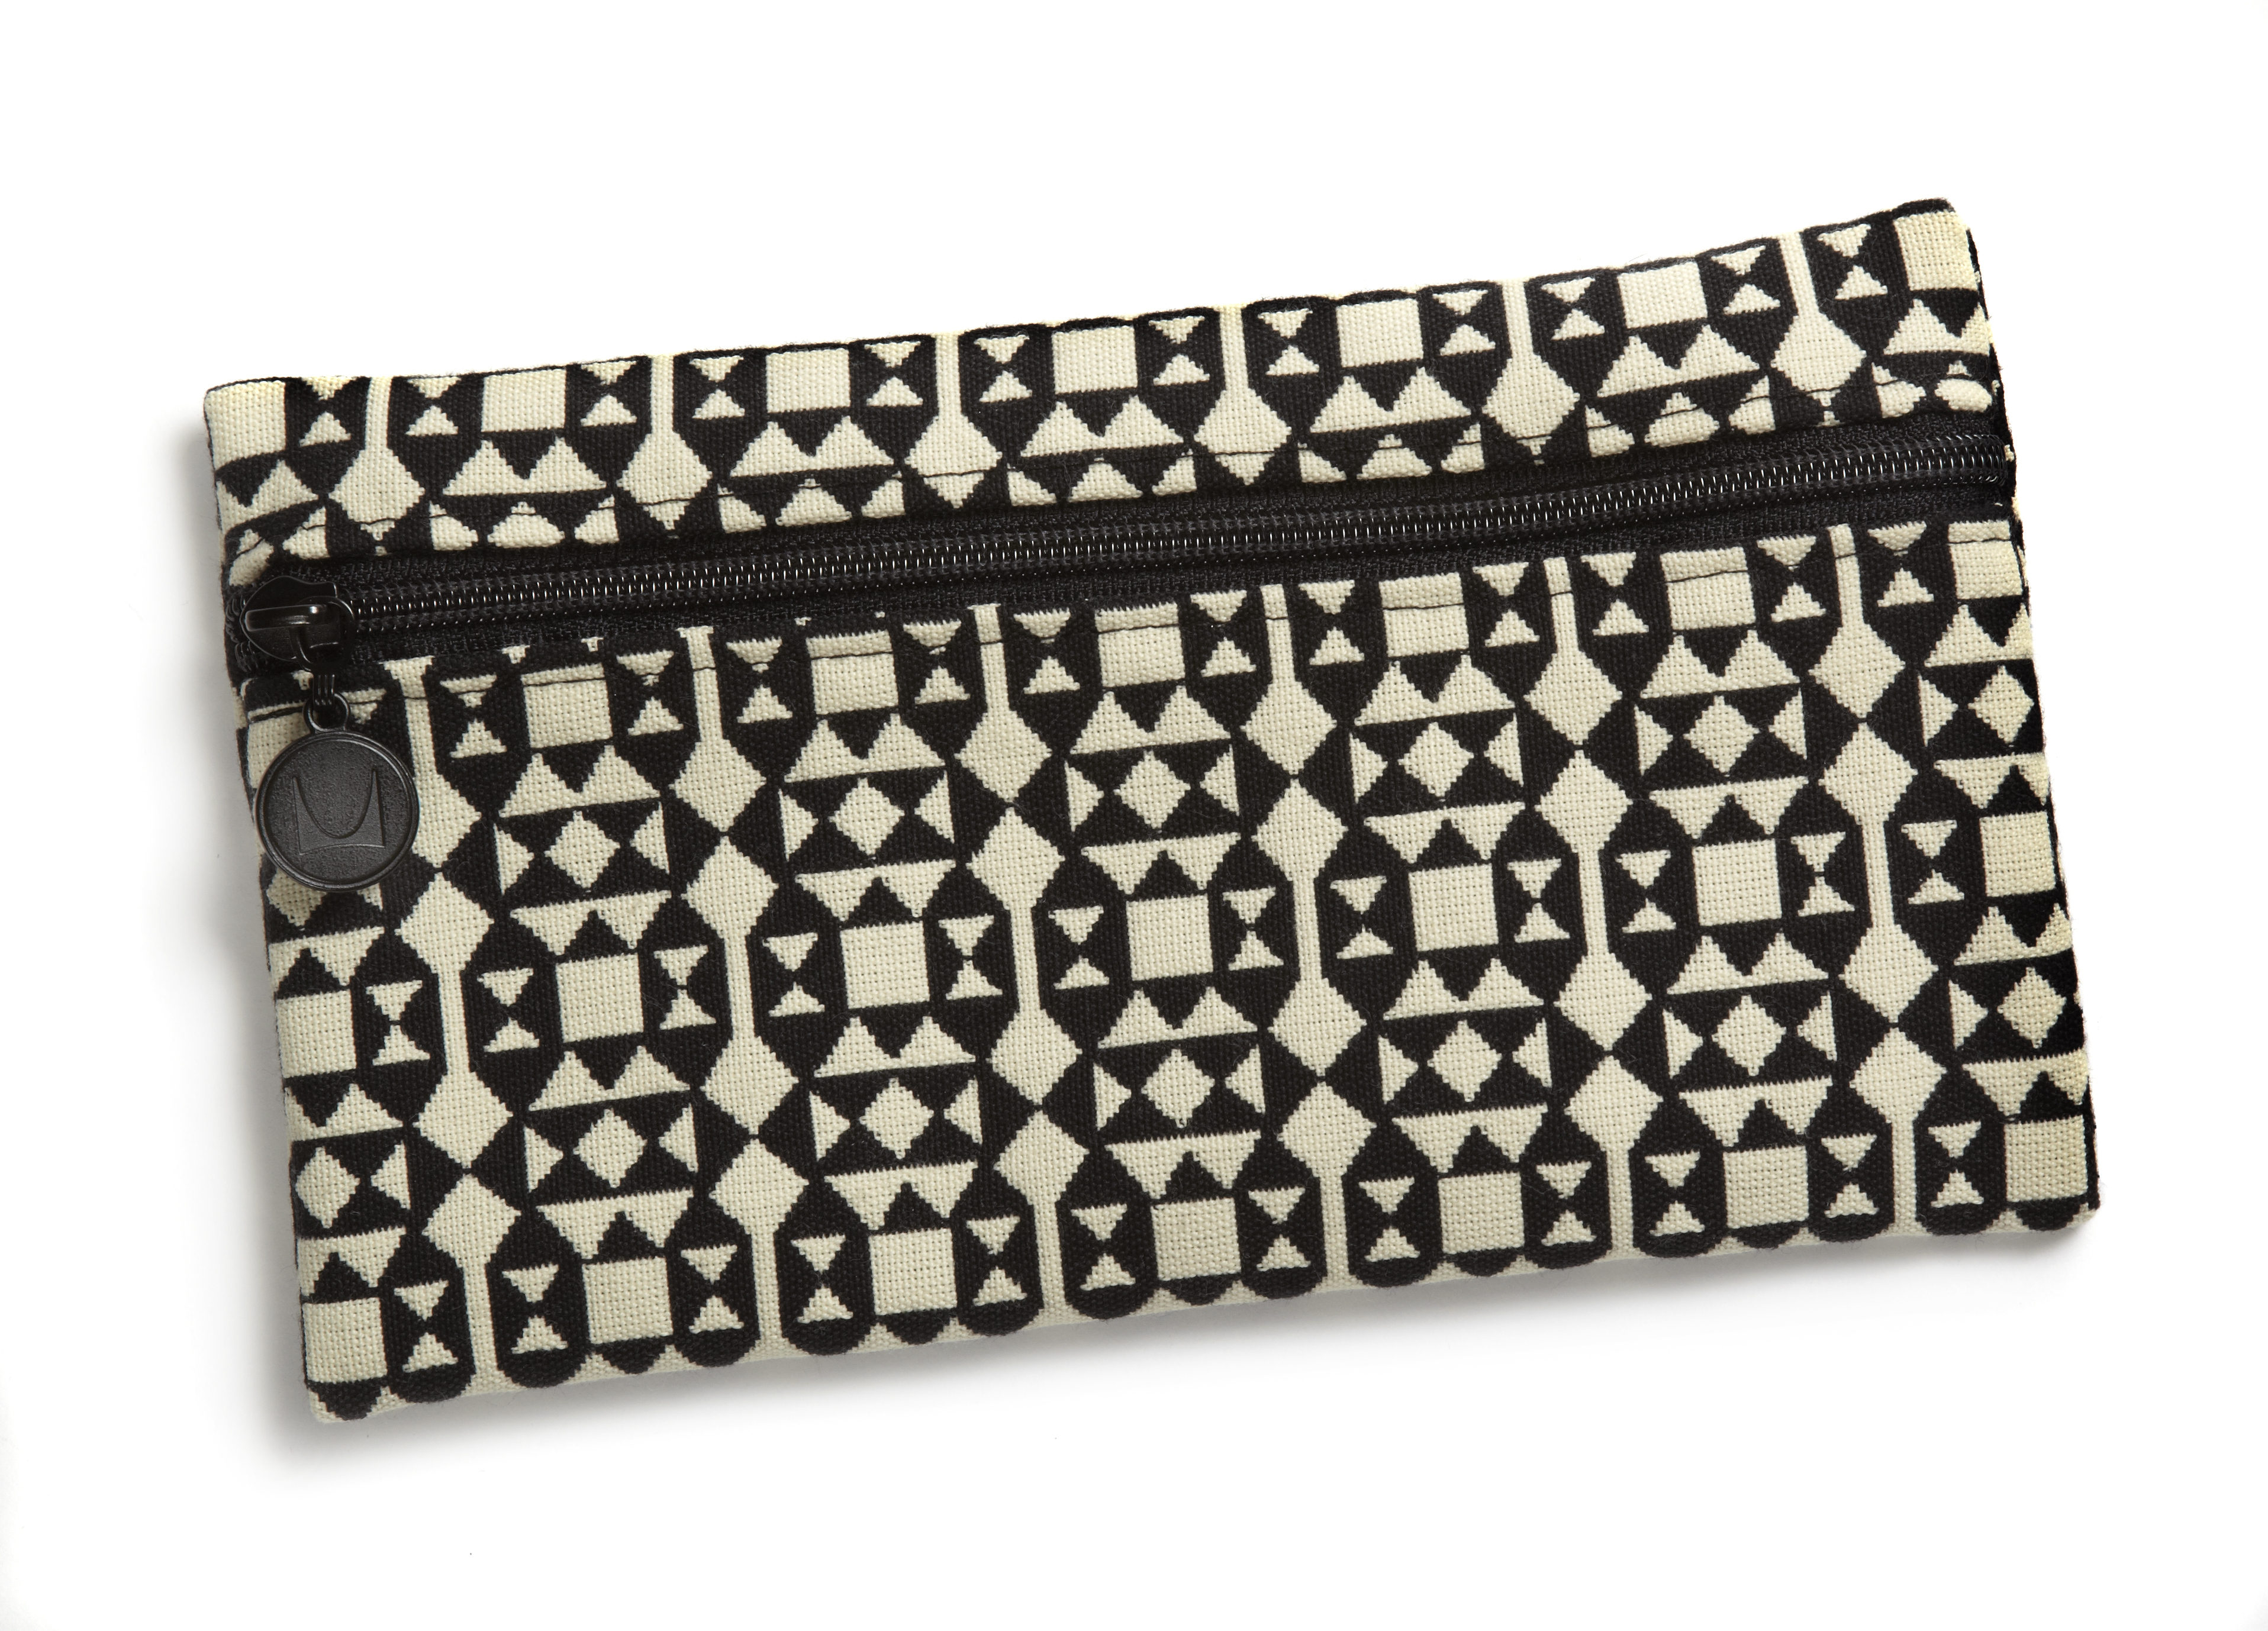 zipper pouch from recycled materials